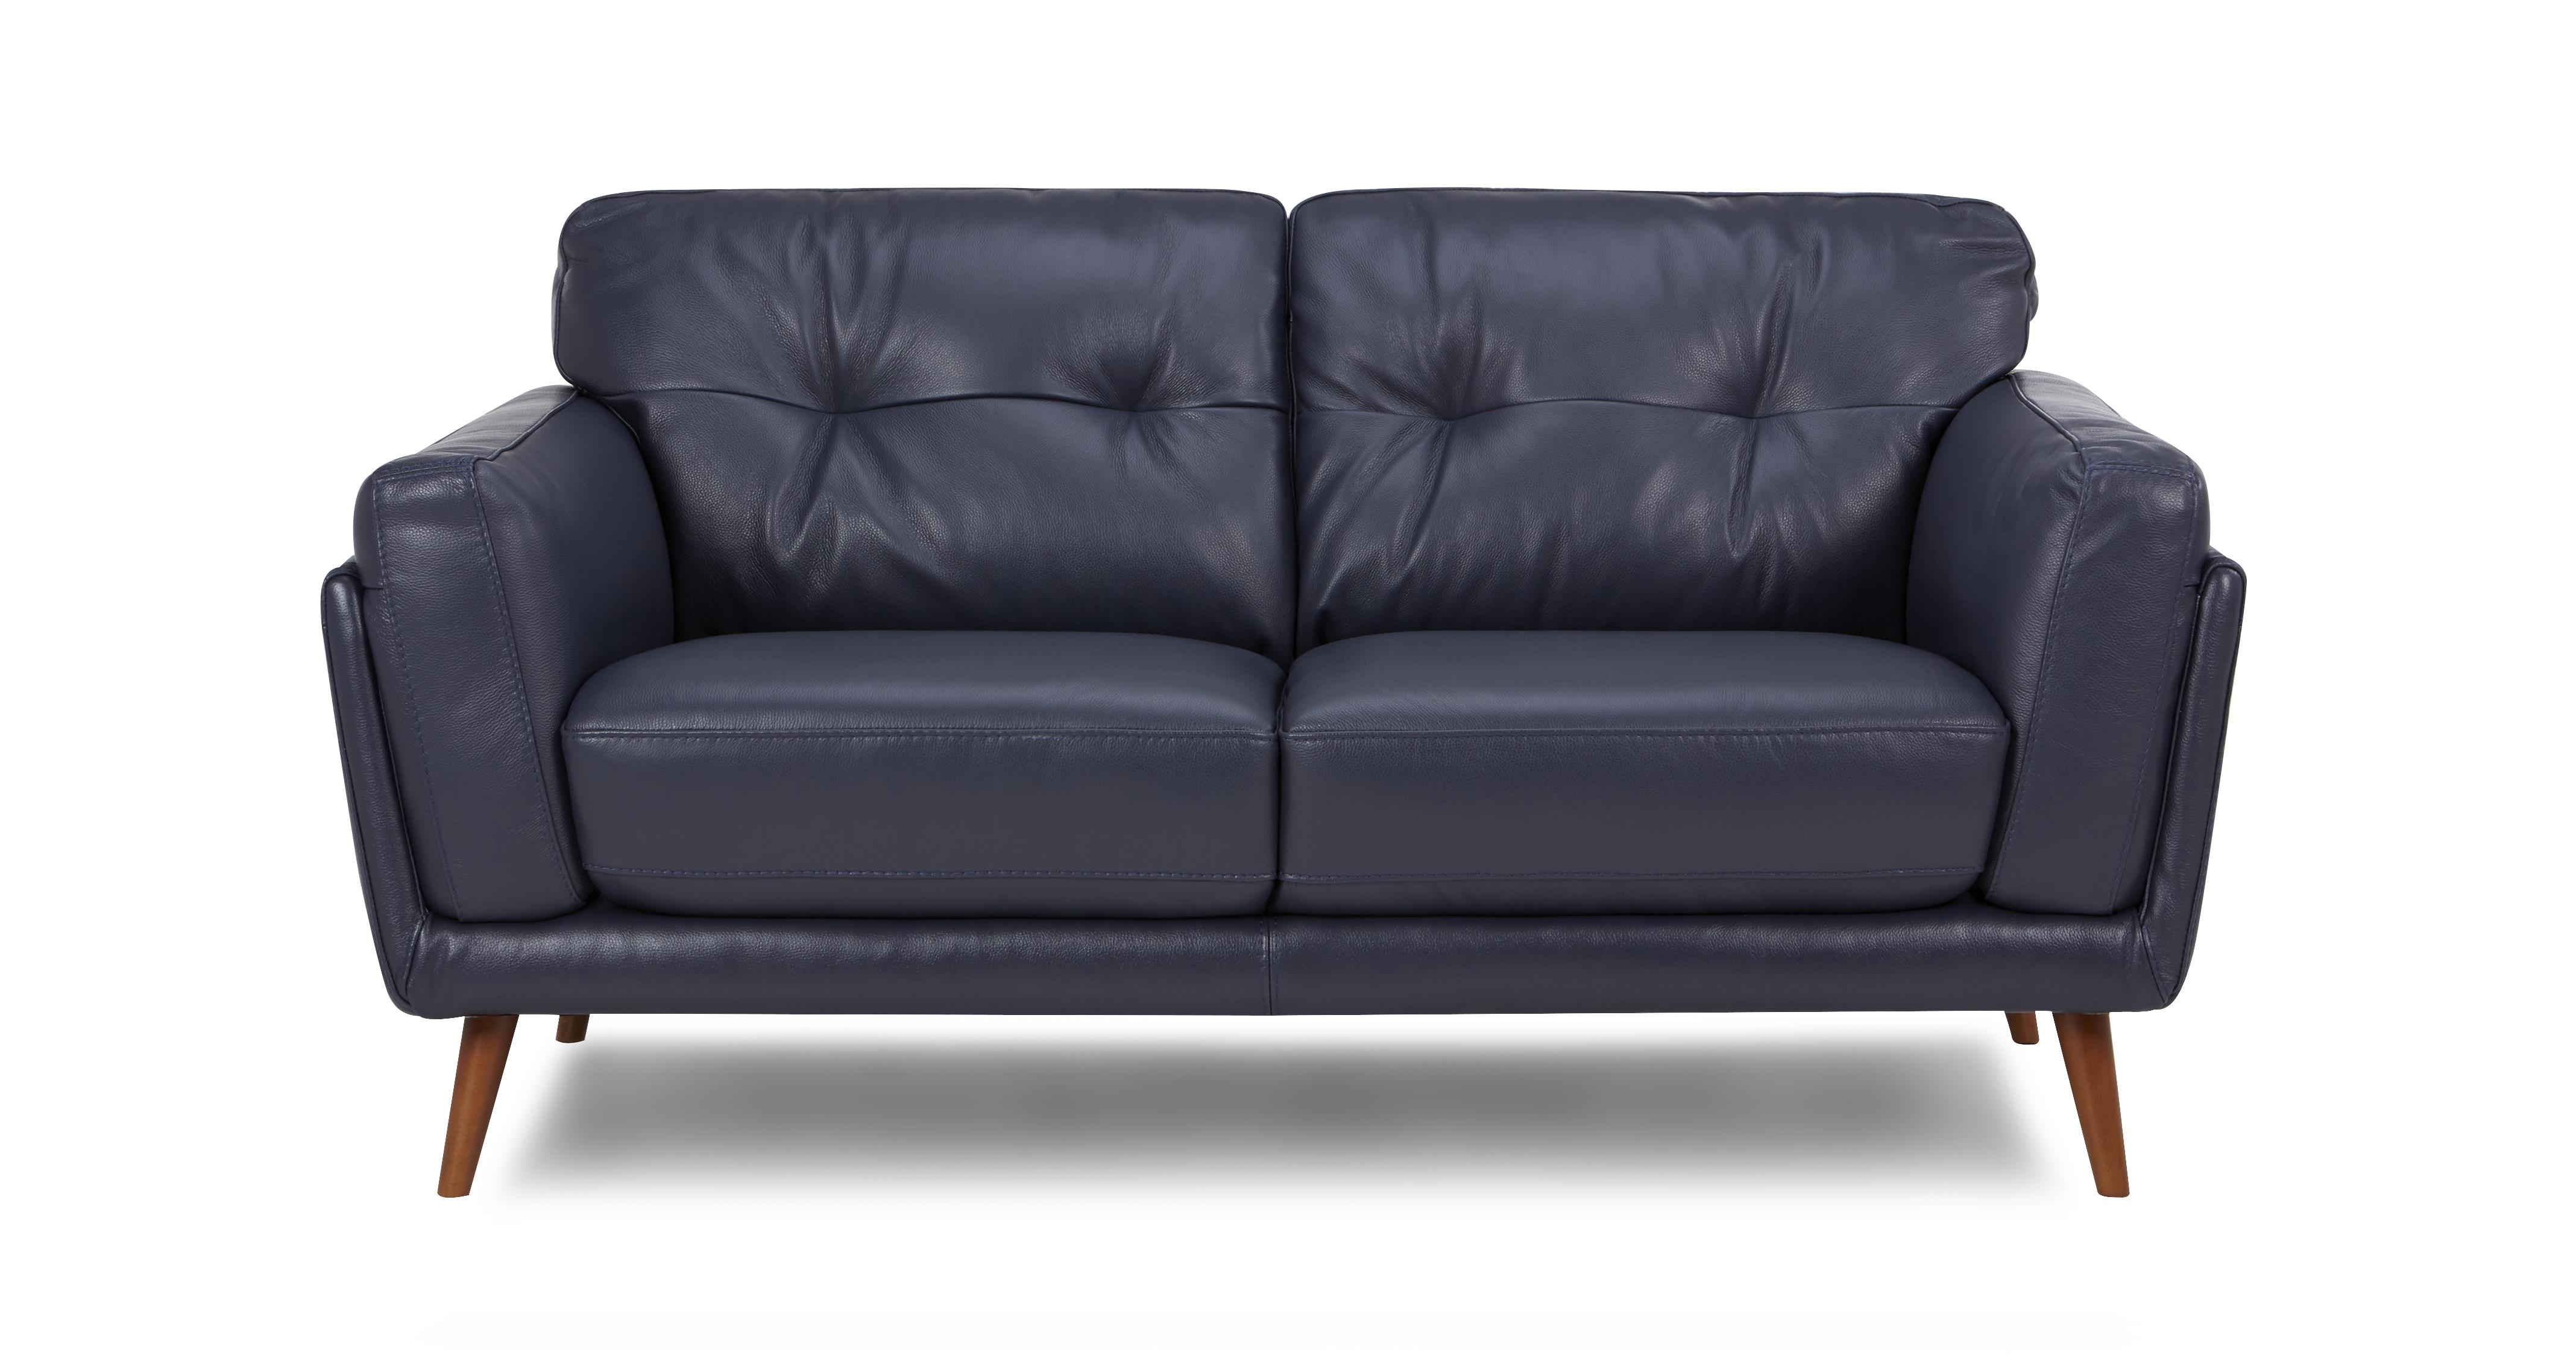 Axel 2 Seater Sofa New Club Dfs